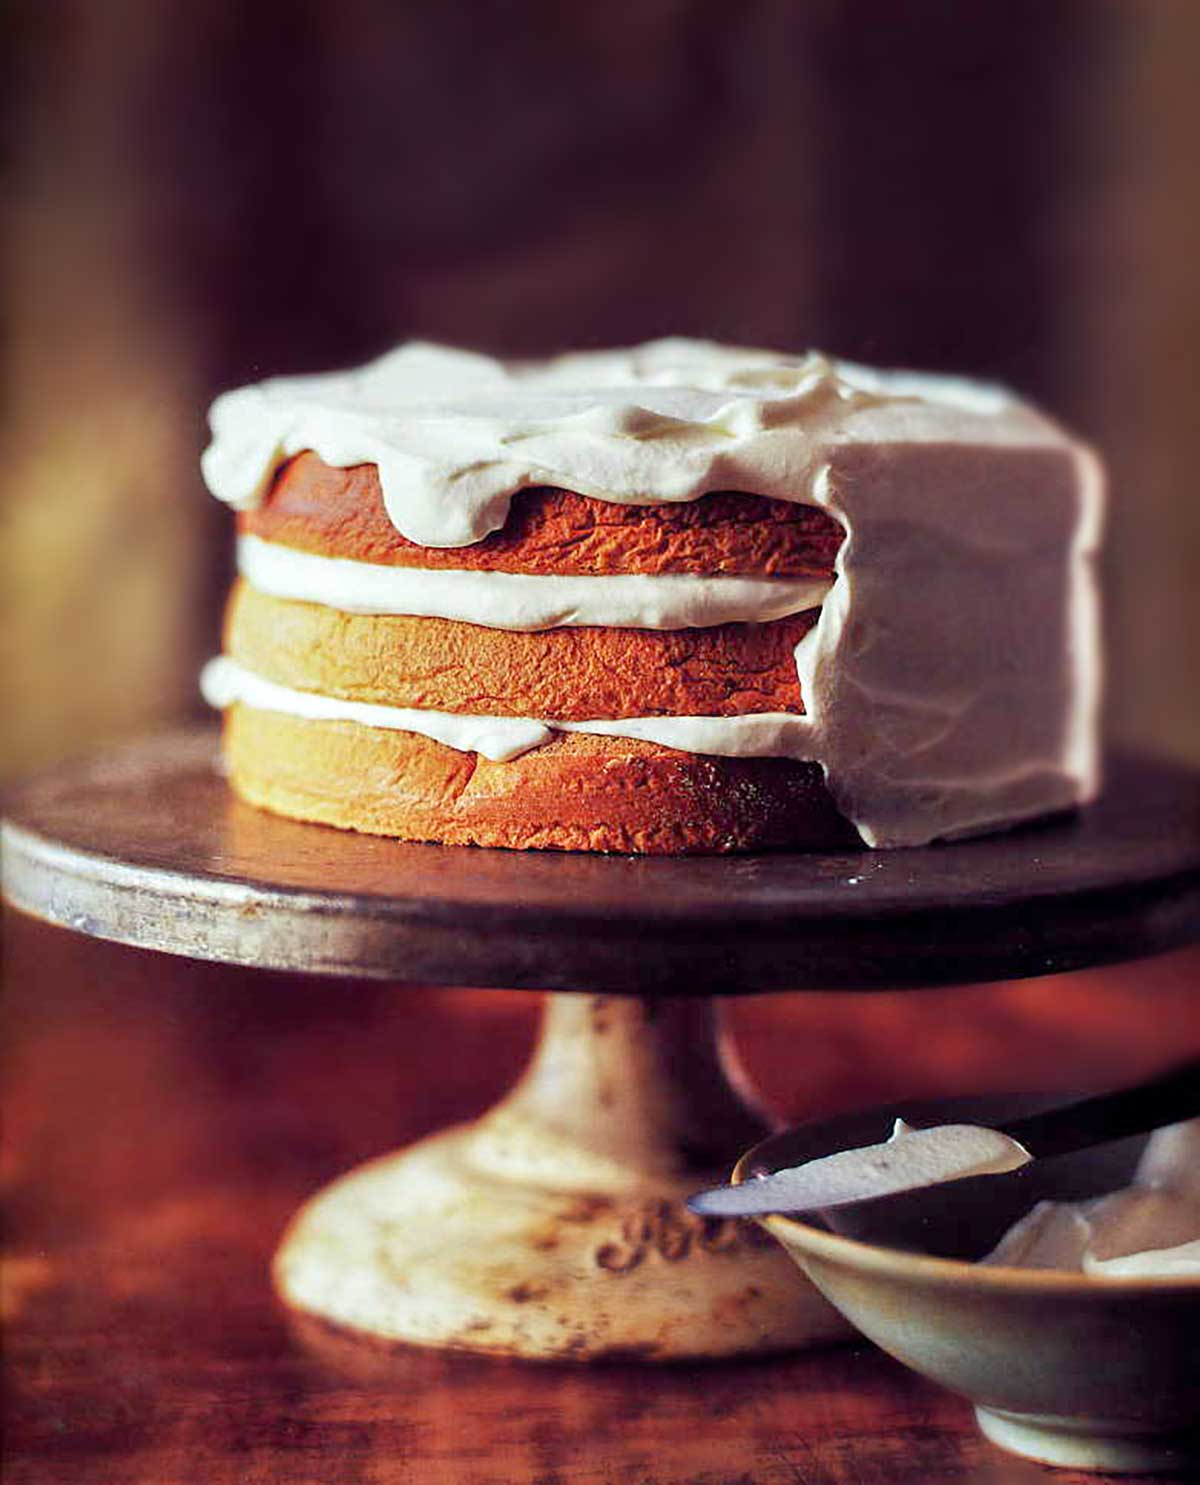 A partially frosted three-layer walnut torte on a vintage cake stand with a bowl of whipped cream and a knife beside it.